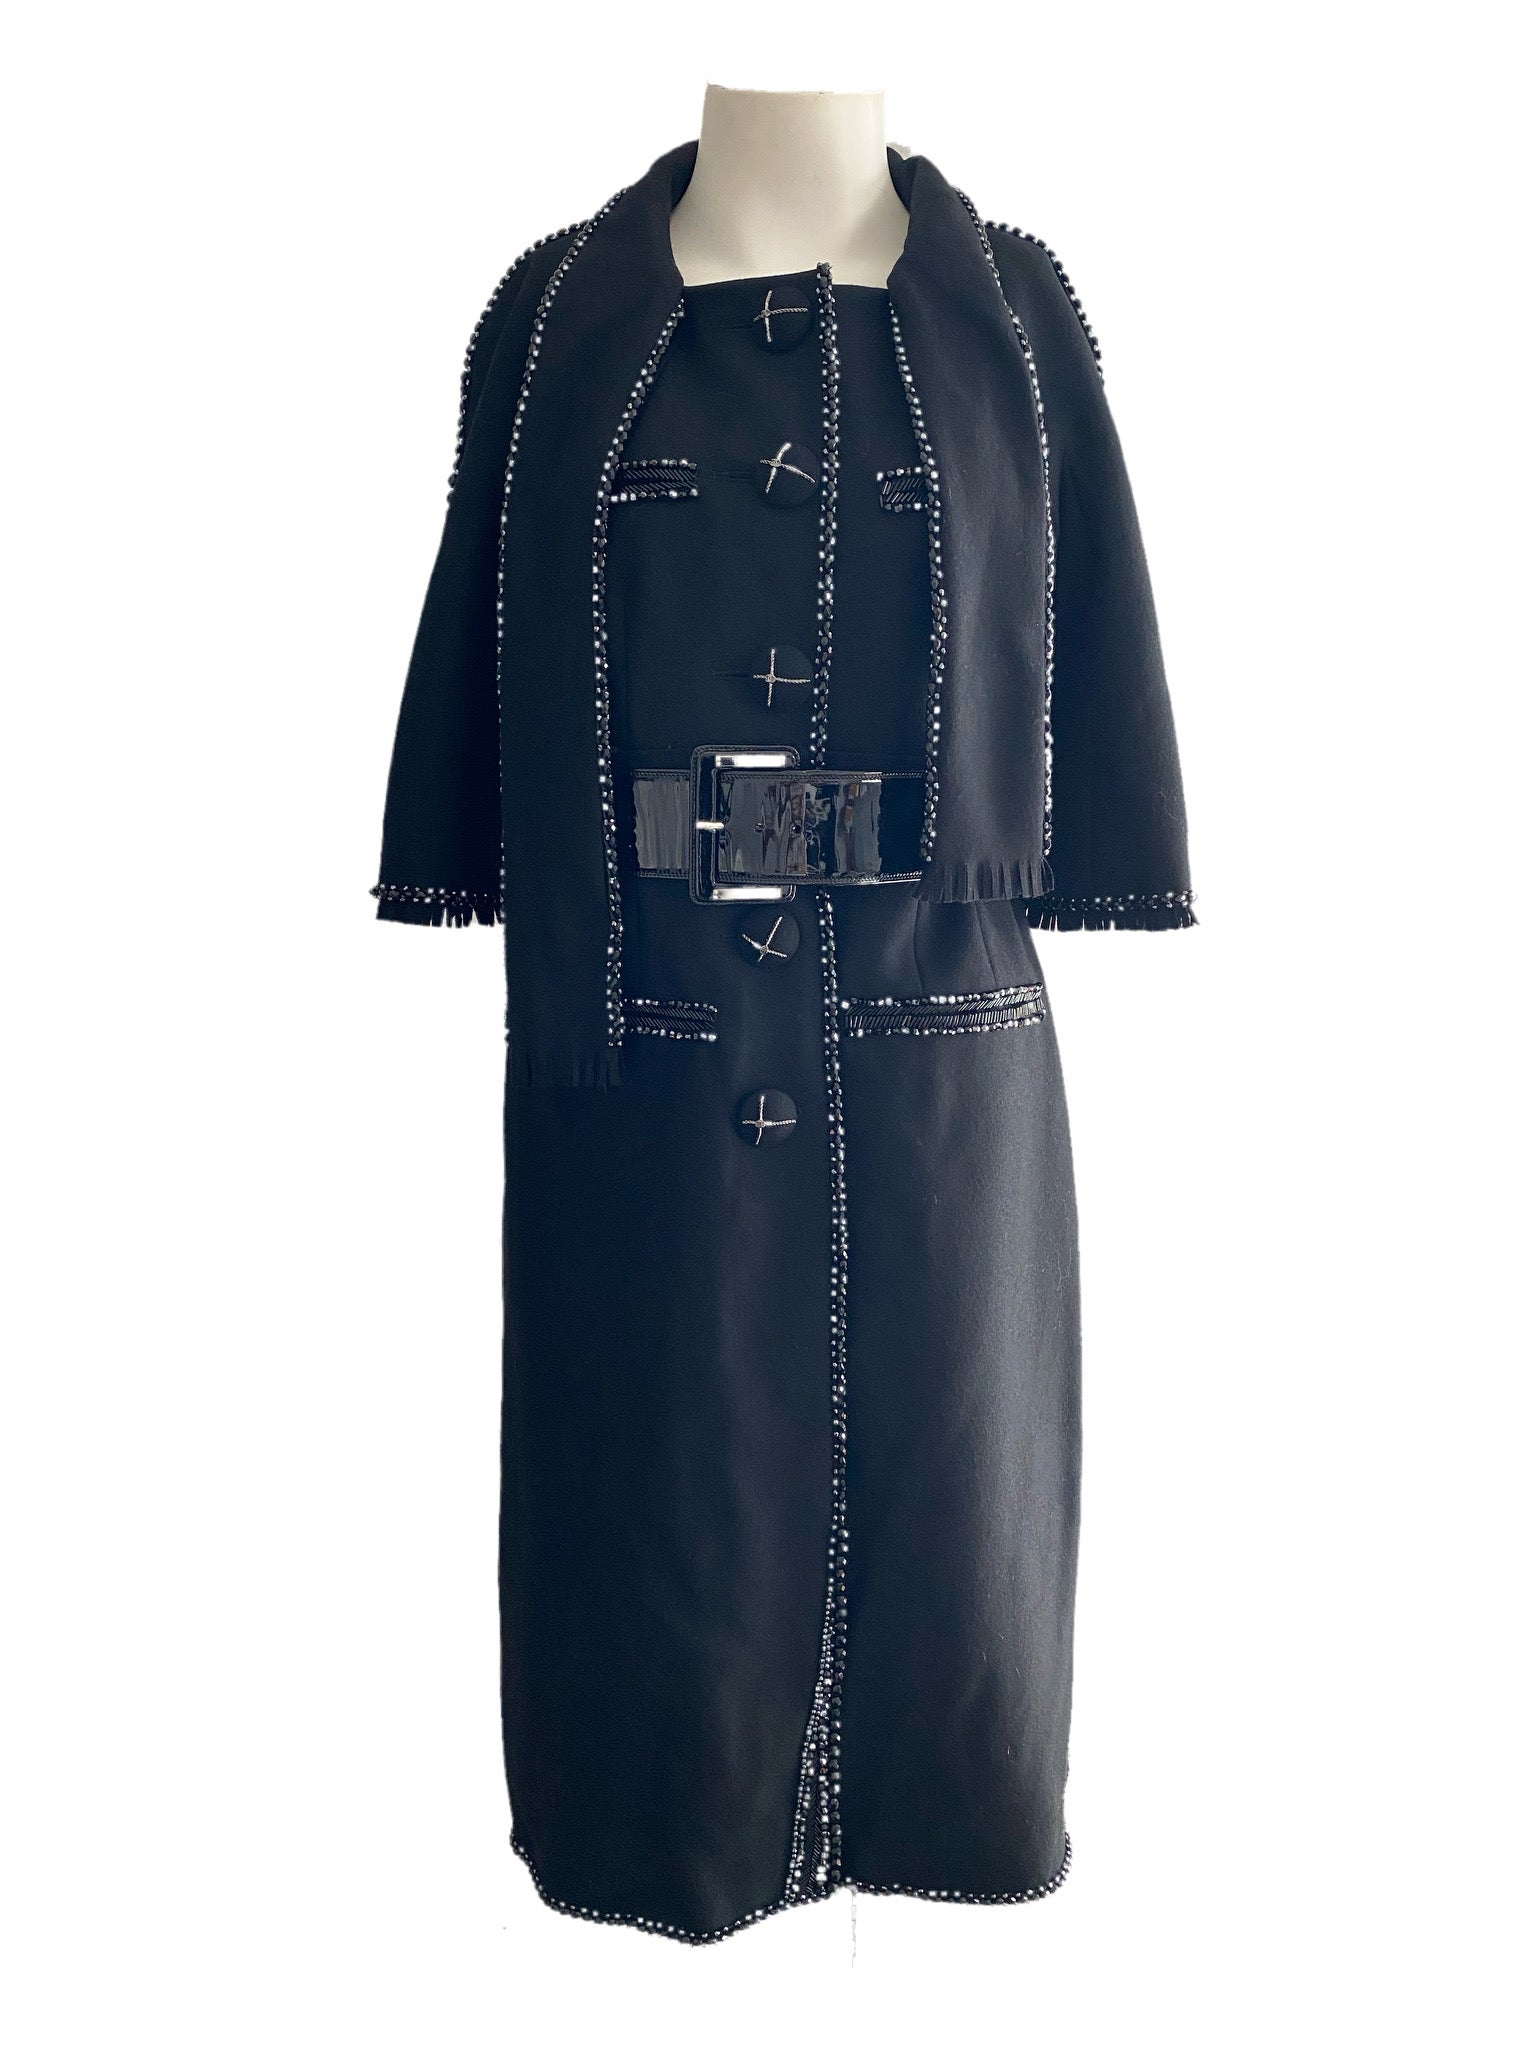 Chanel Black Beaded Dress Coat with Belt Size 40 Autumn 2007